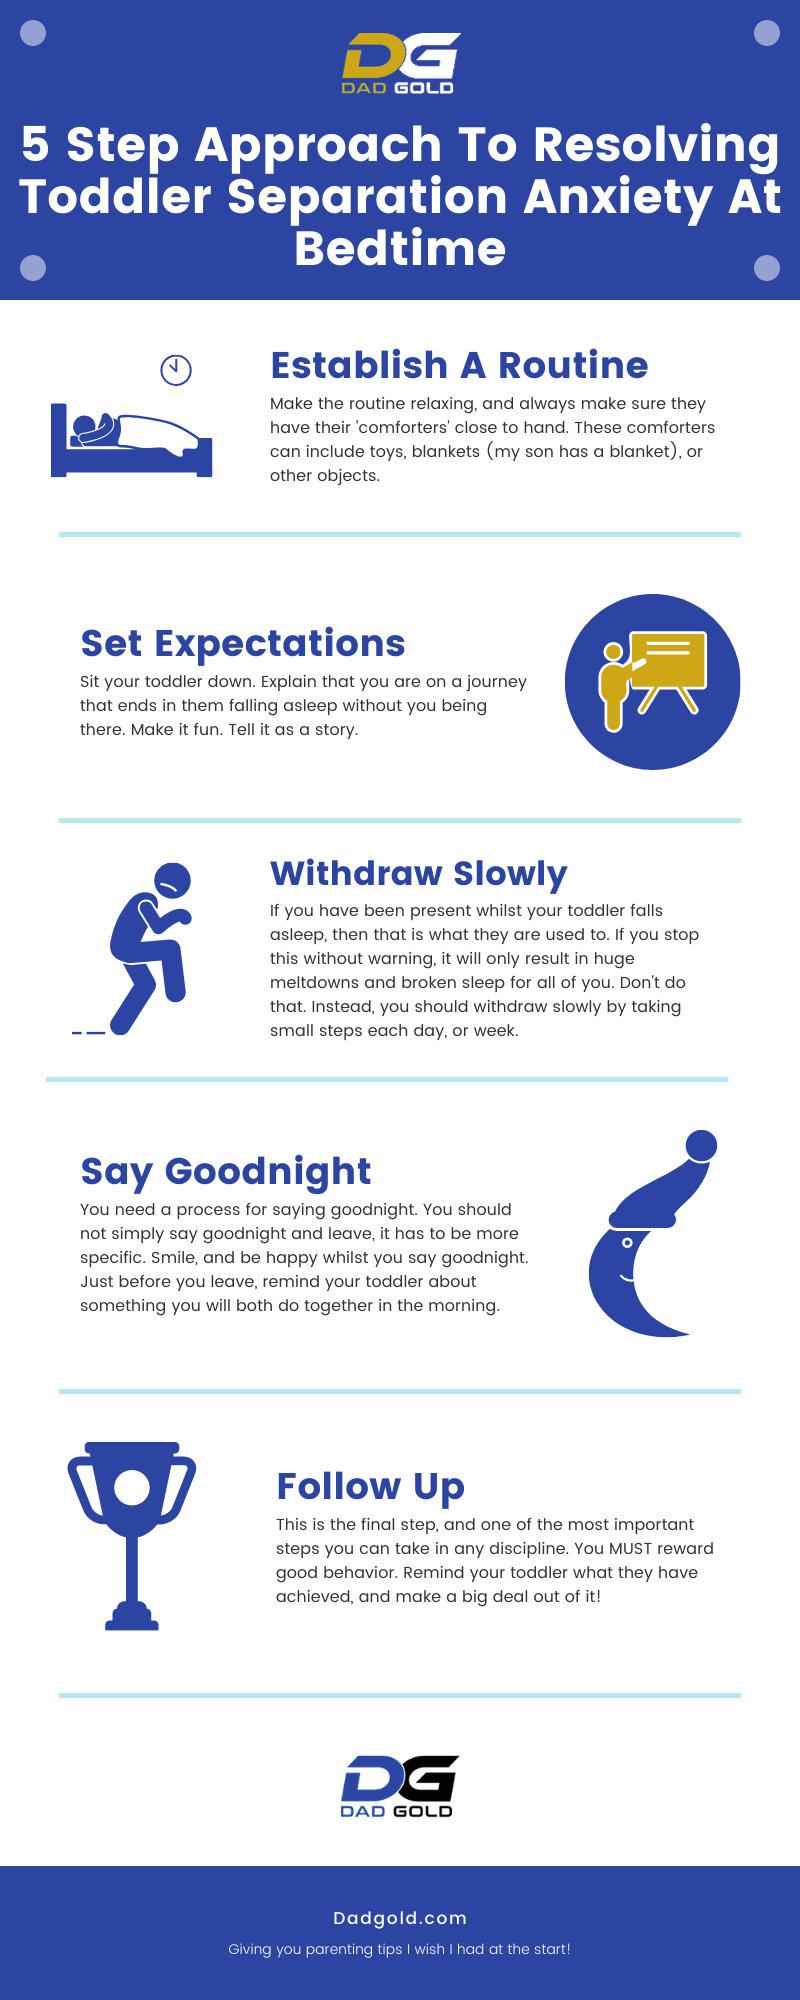 5 Step Approach To Resolving Toddler Separation Anxiety At Bedtime Infographic